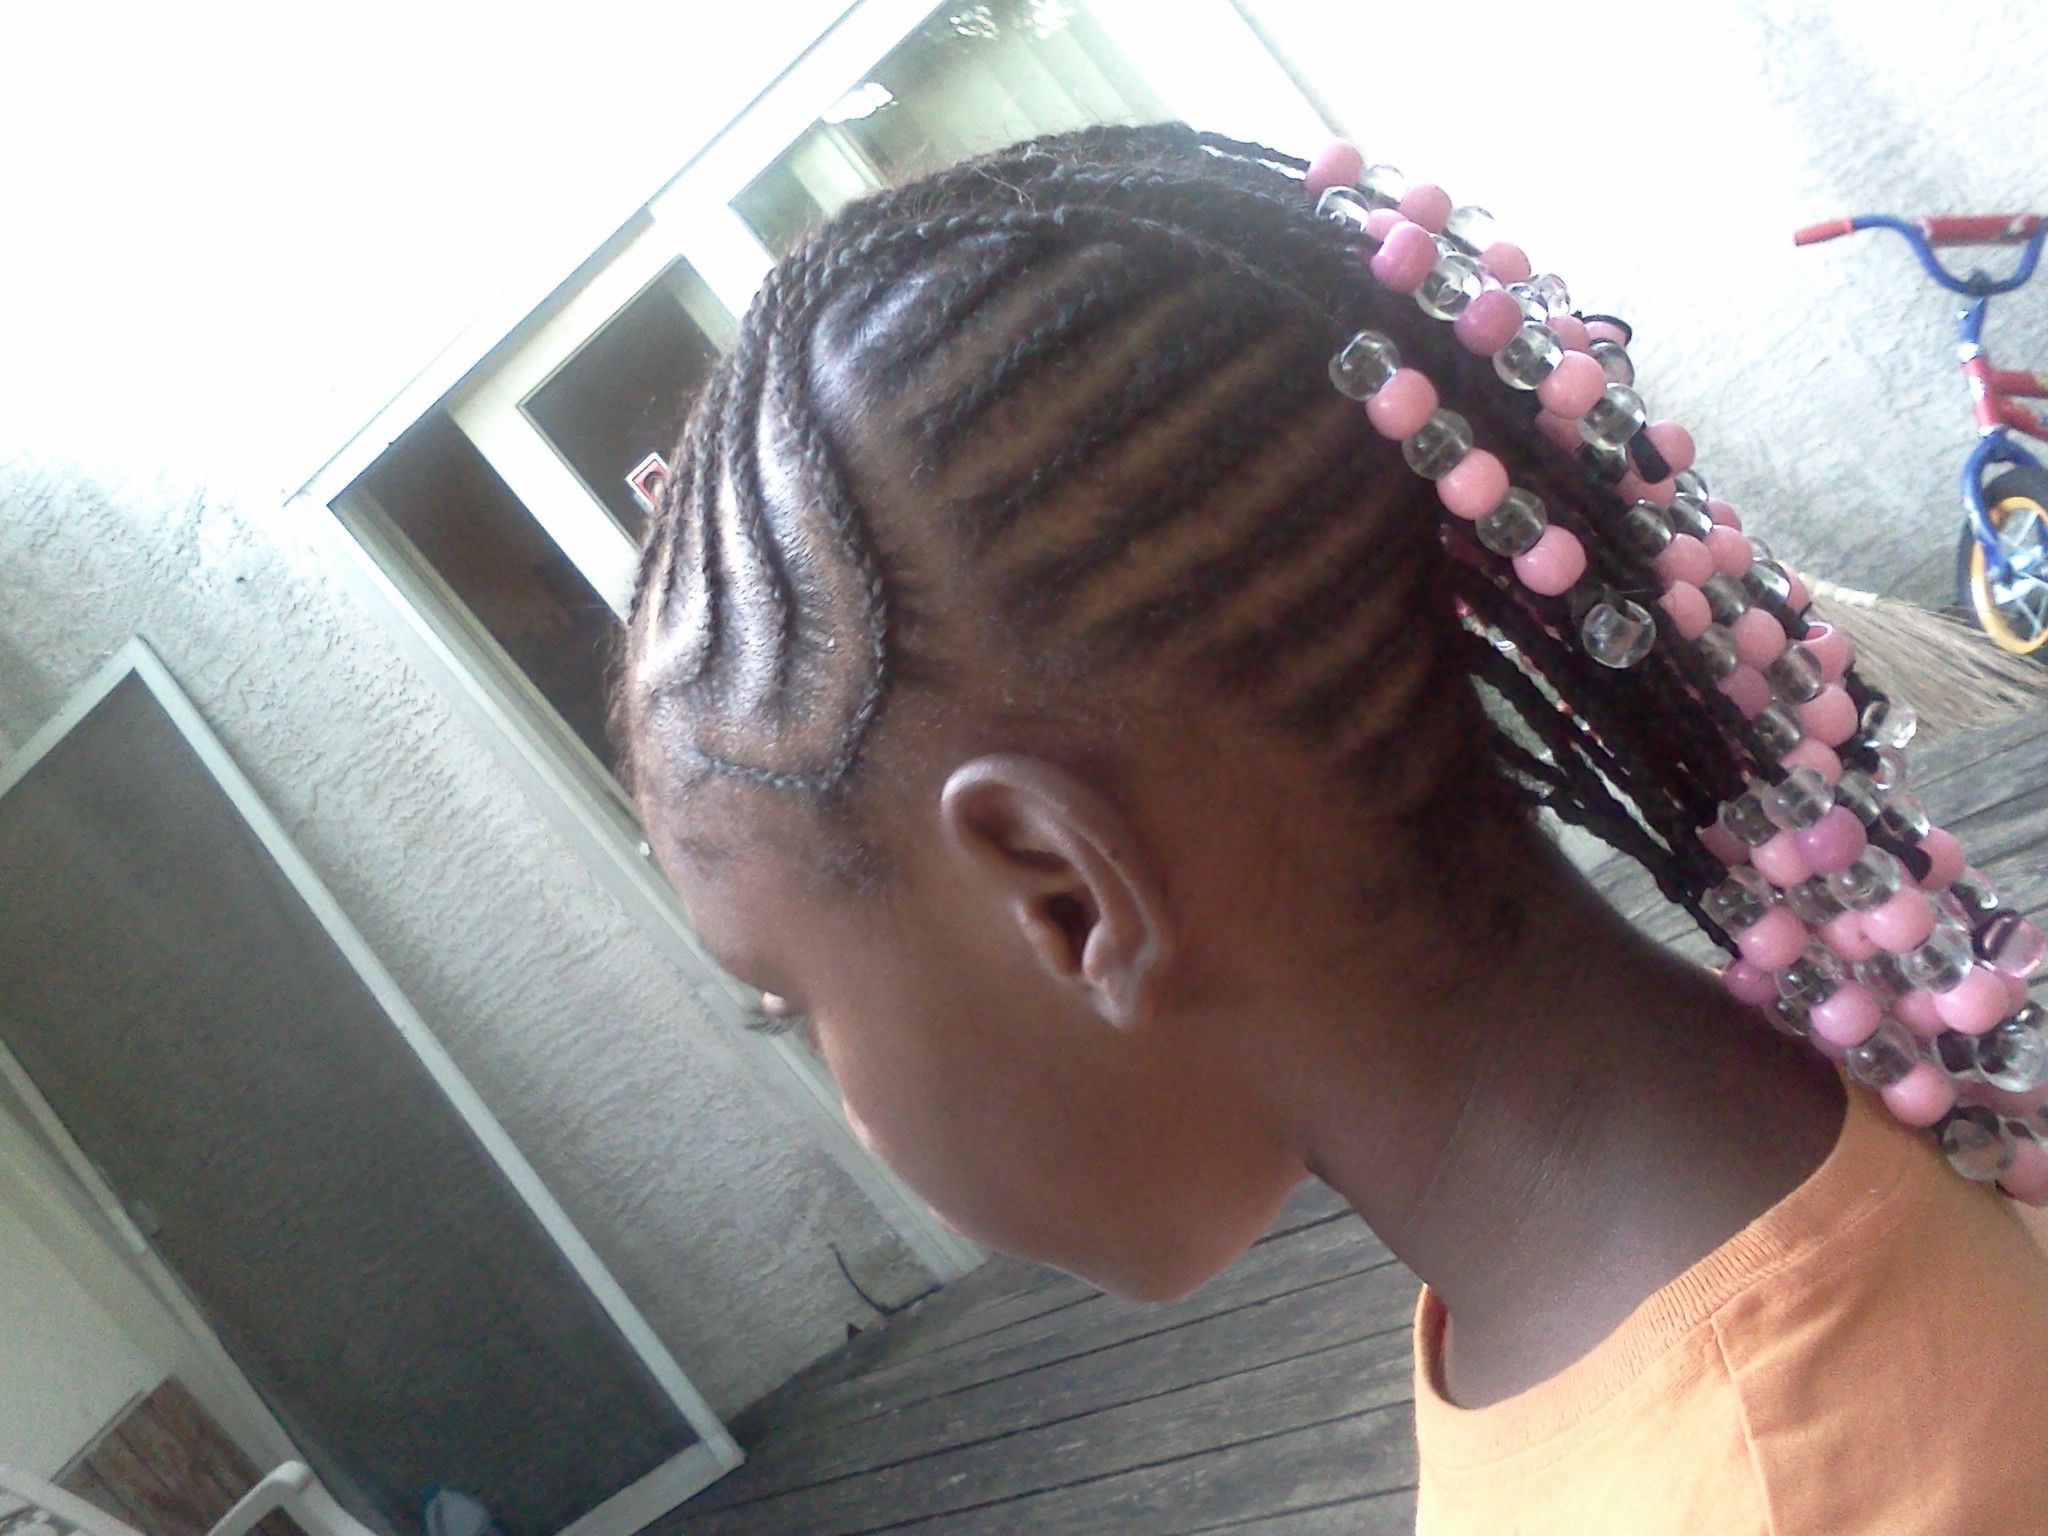 Braided Hair Styles For Little Girls: Little Girls Braided Mohawk With Beads.